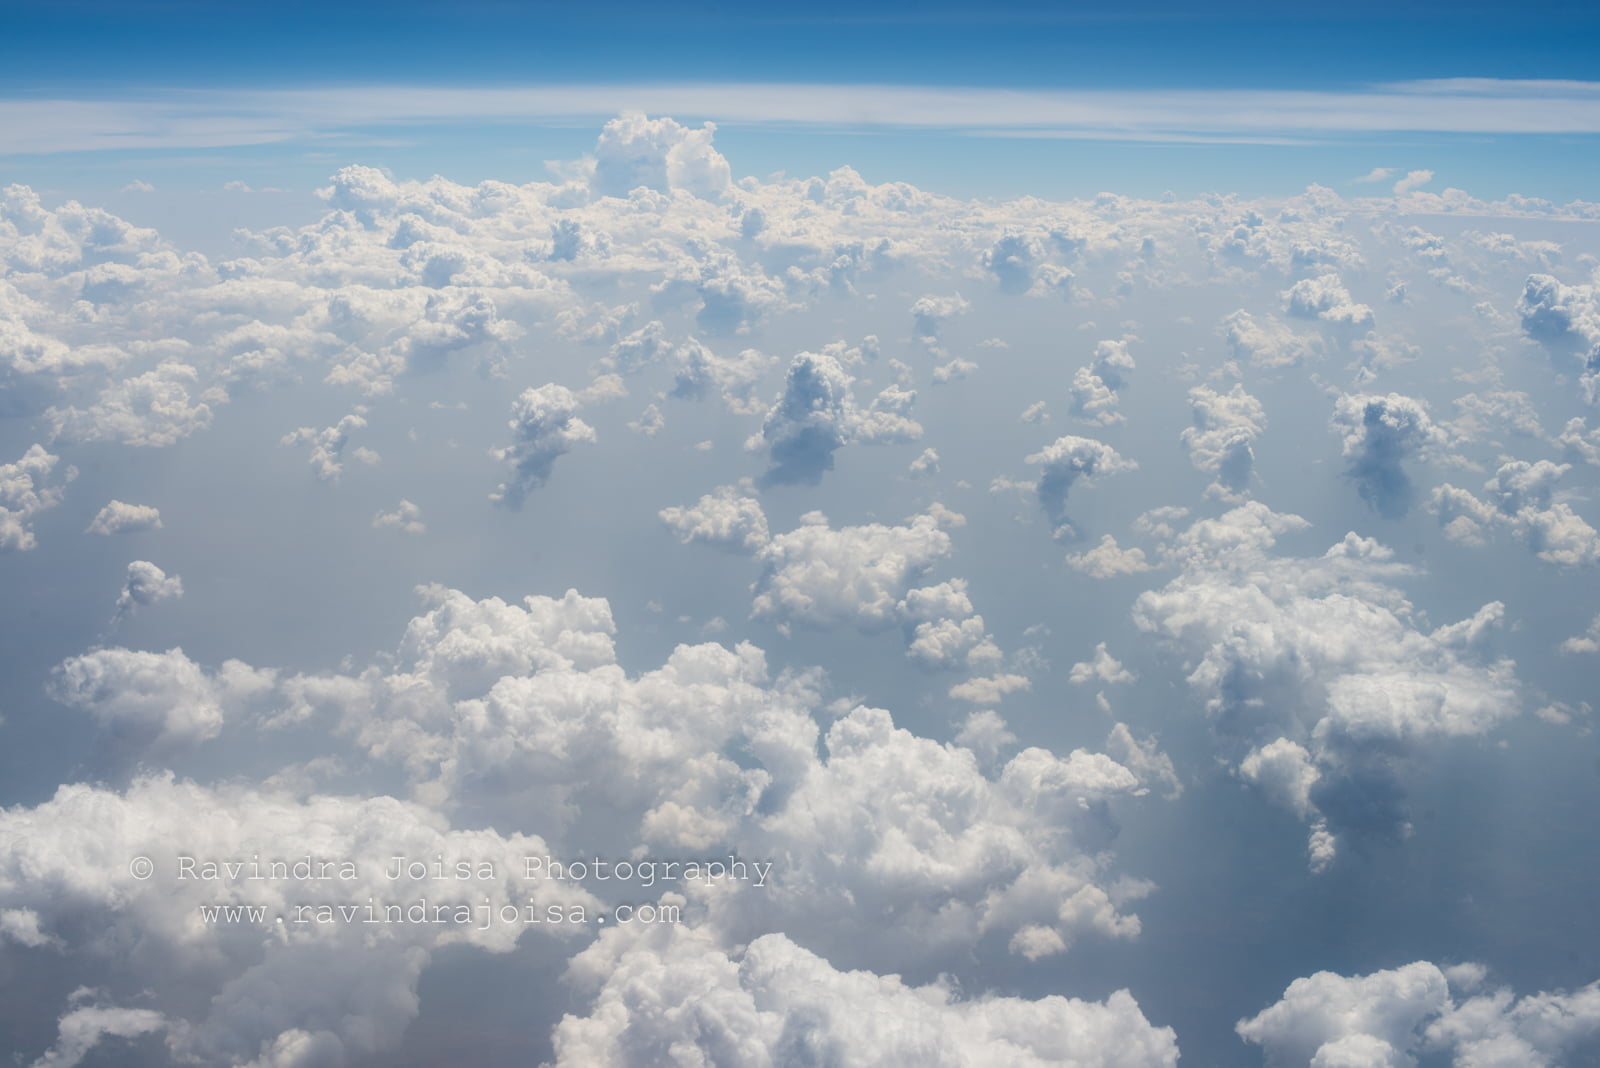 Cloud as view from aeroplane